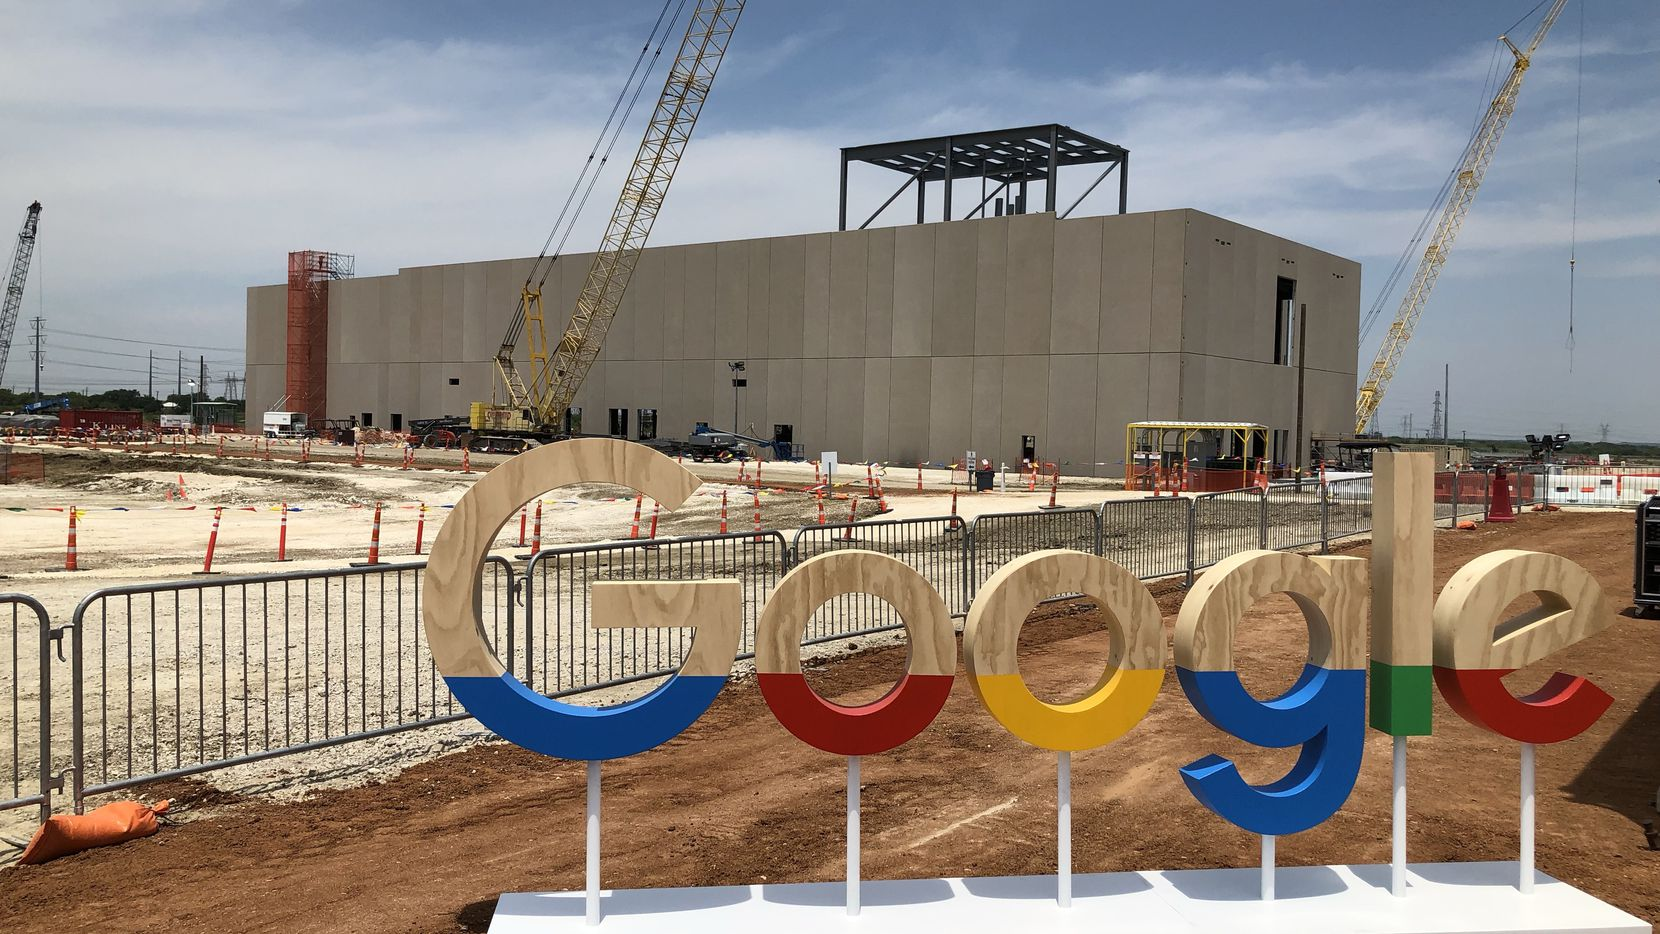 Google's $600 million data center is being built in Midlothian about 25 miles southwest of Dallas.